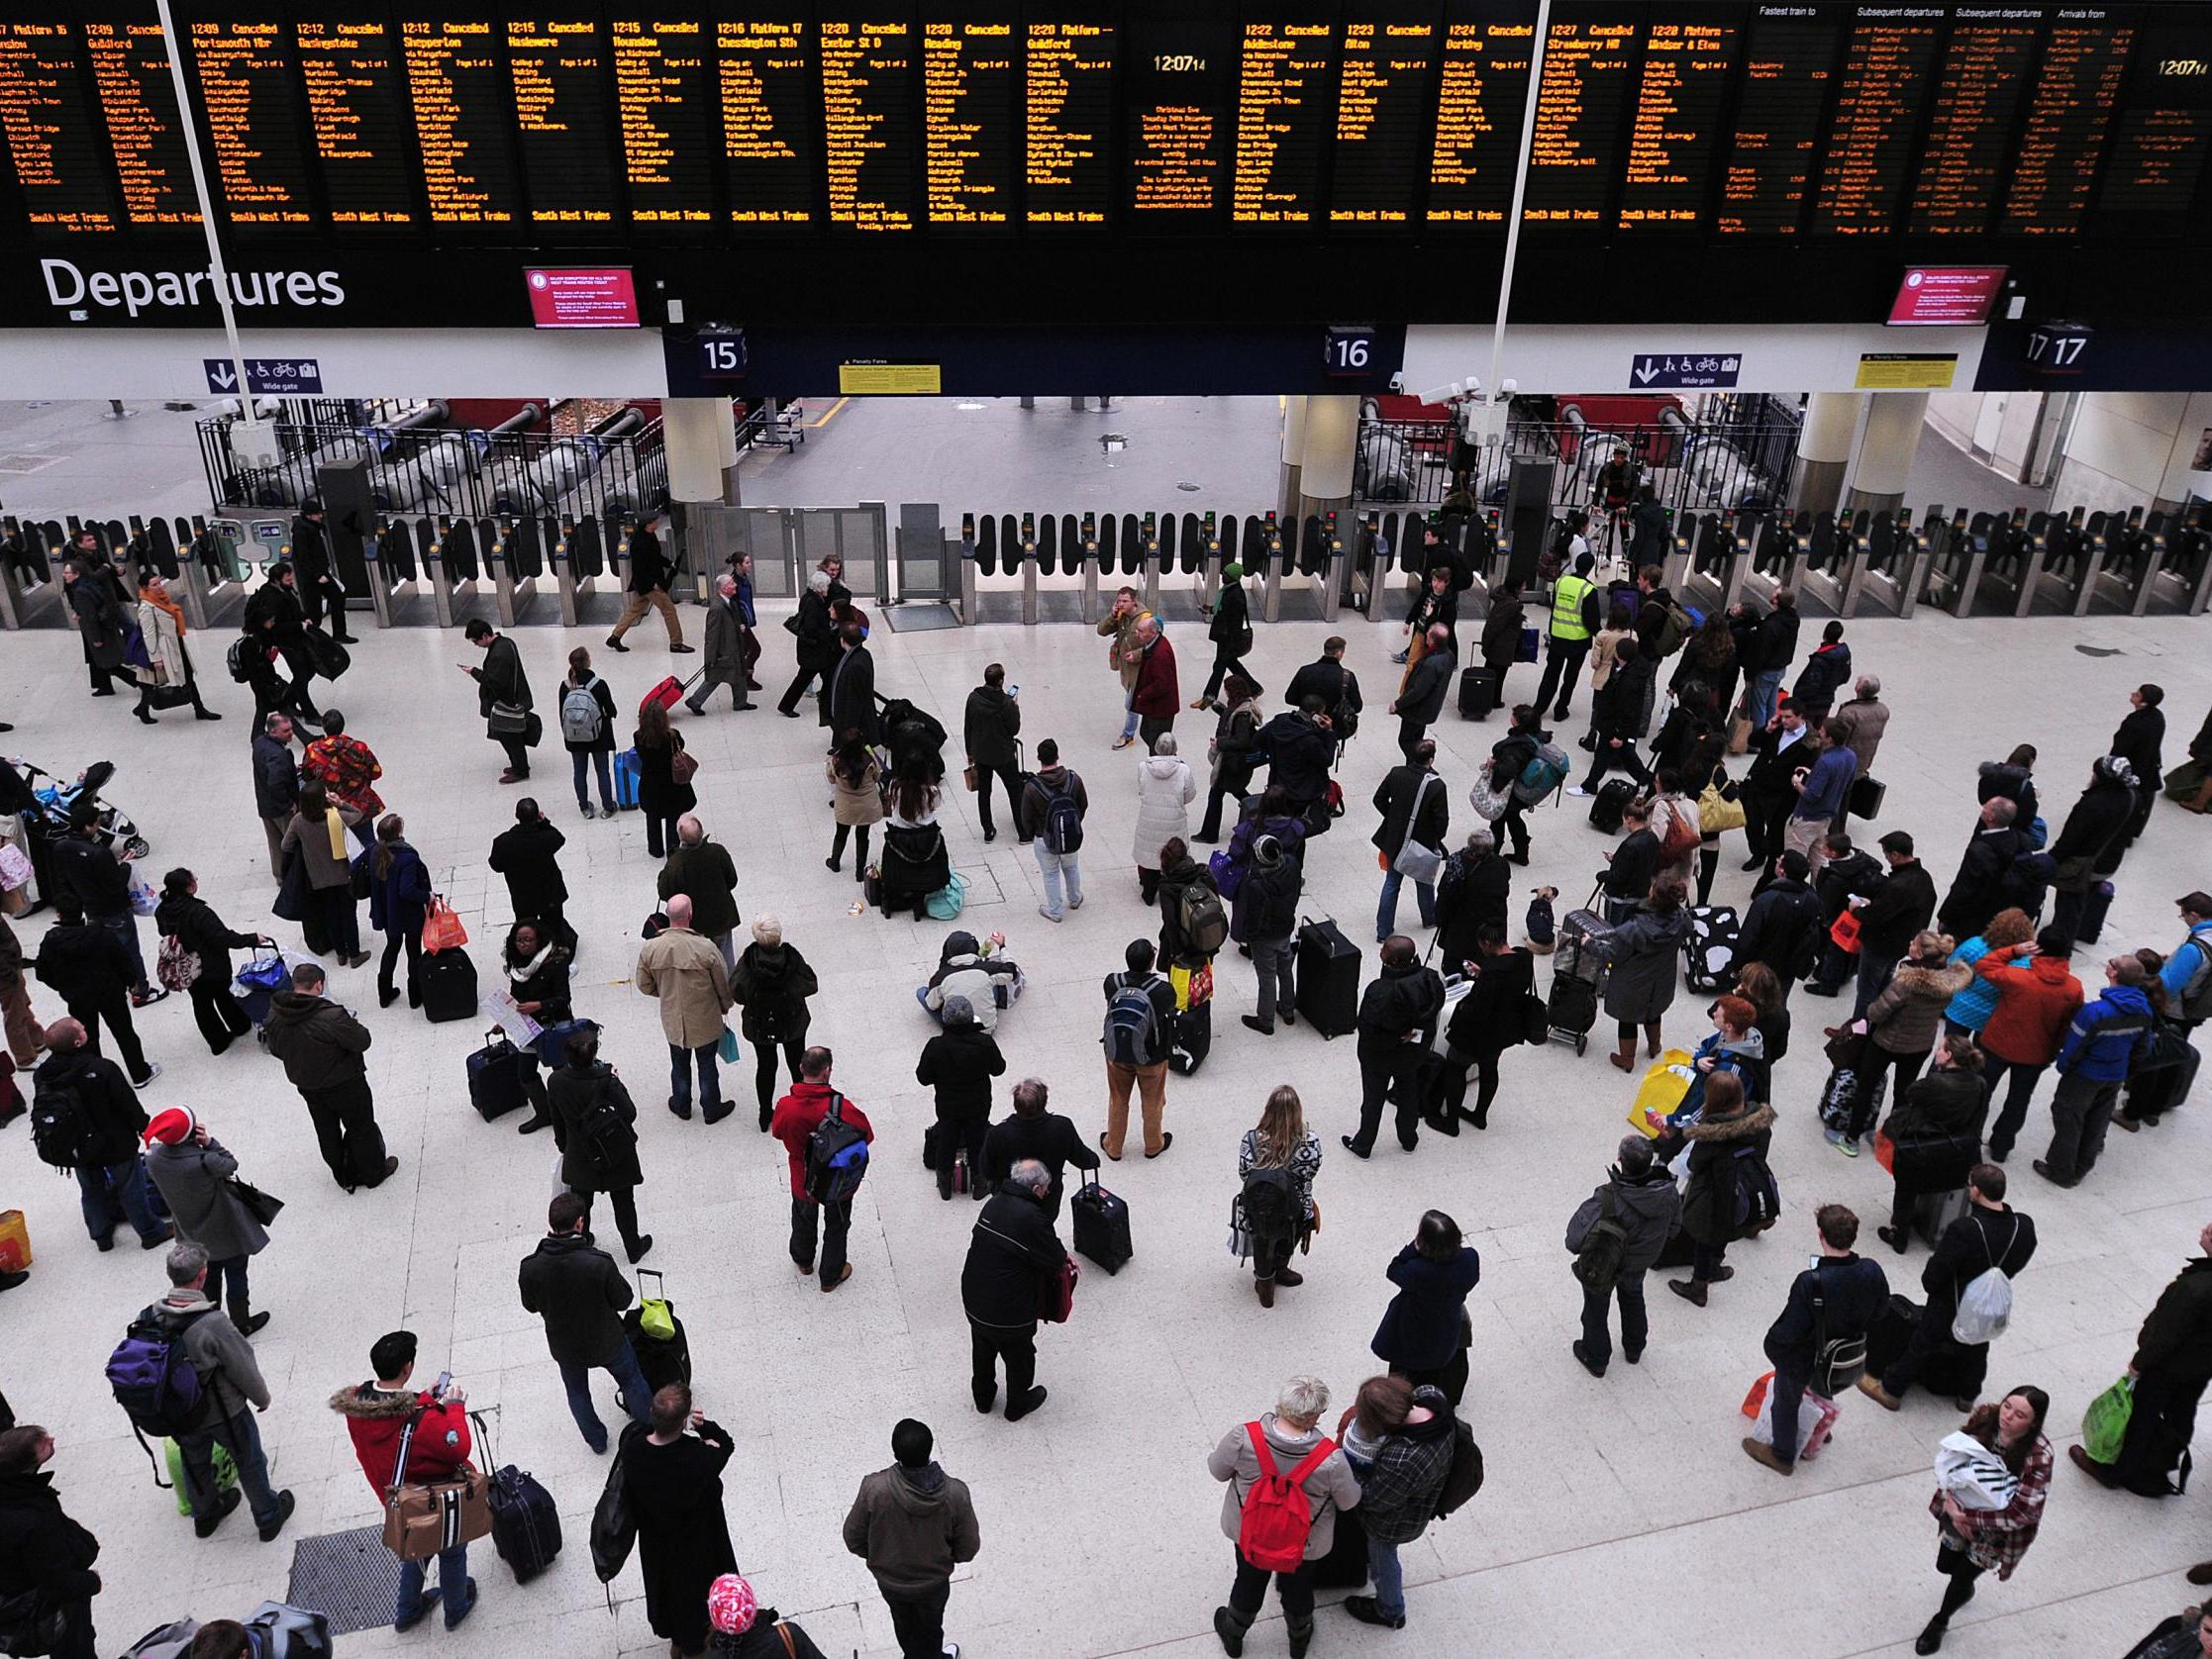 UK weather: Rail disruption continues amid flooded lines and power cuts